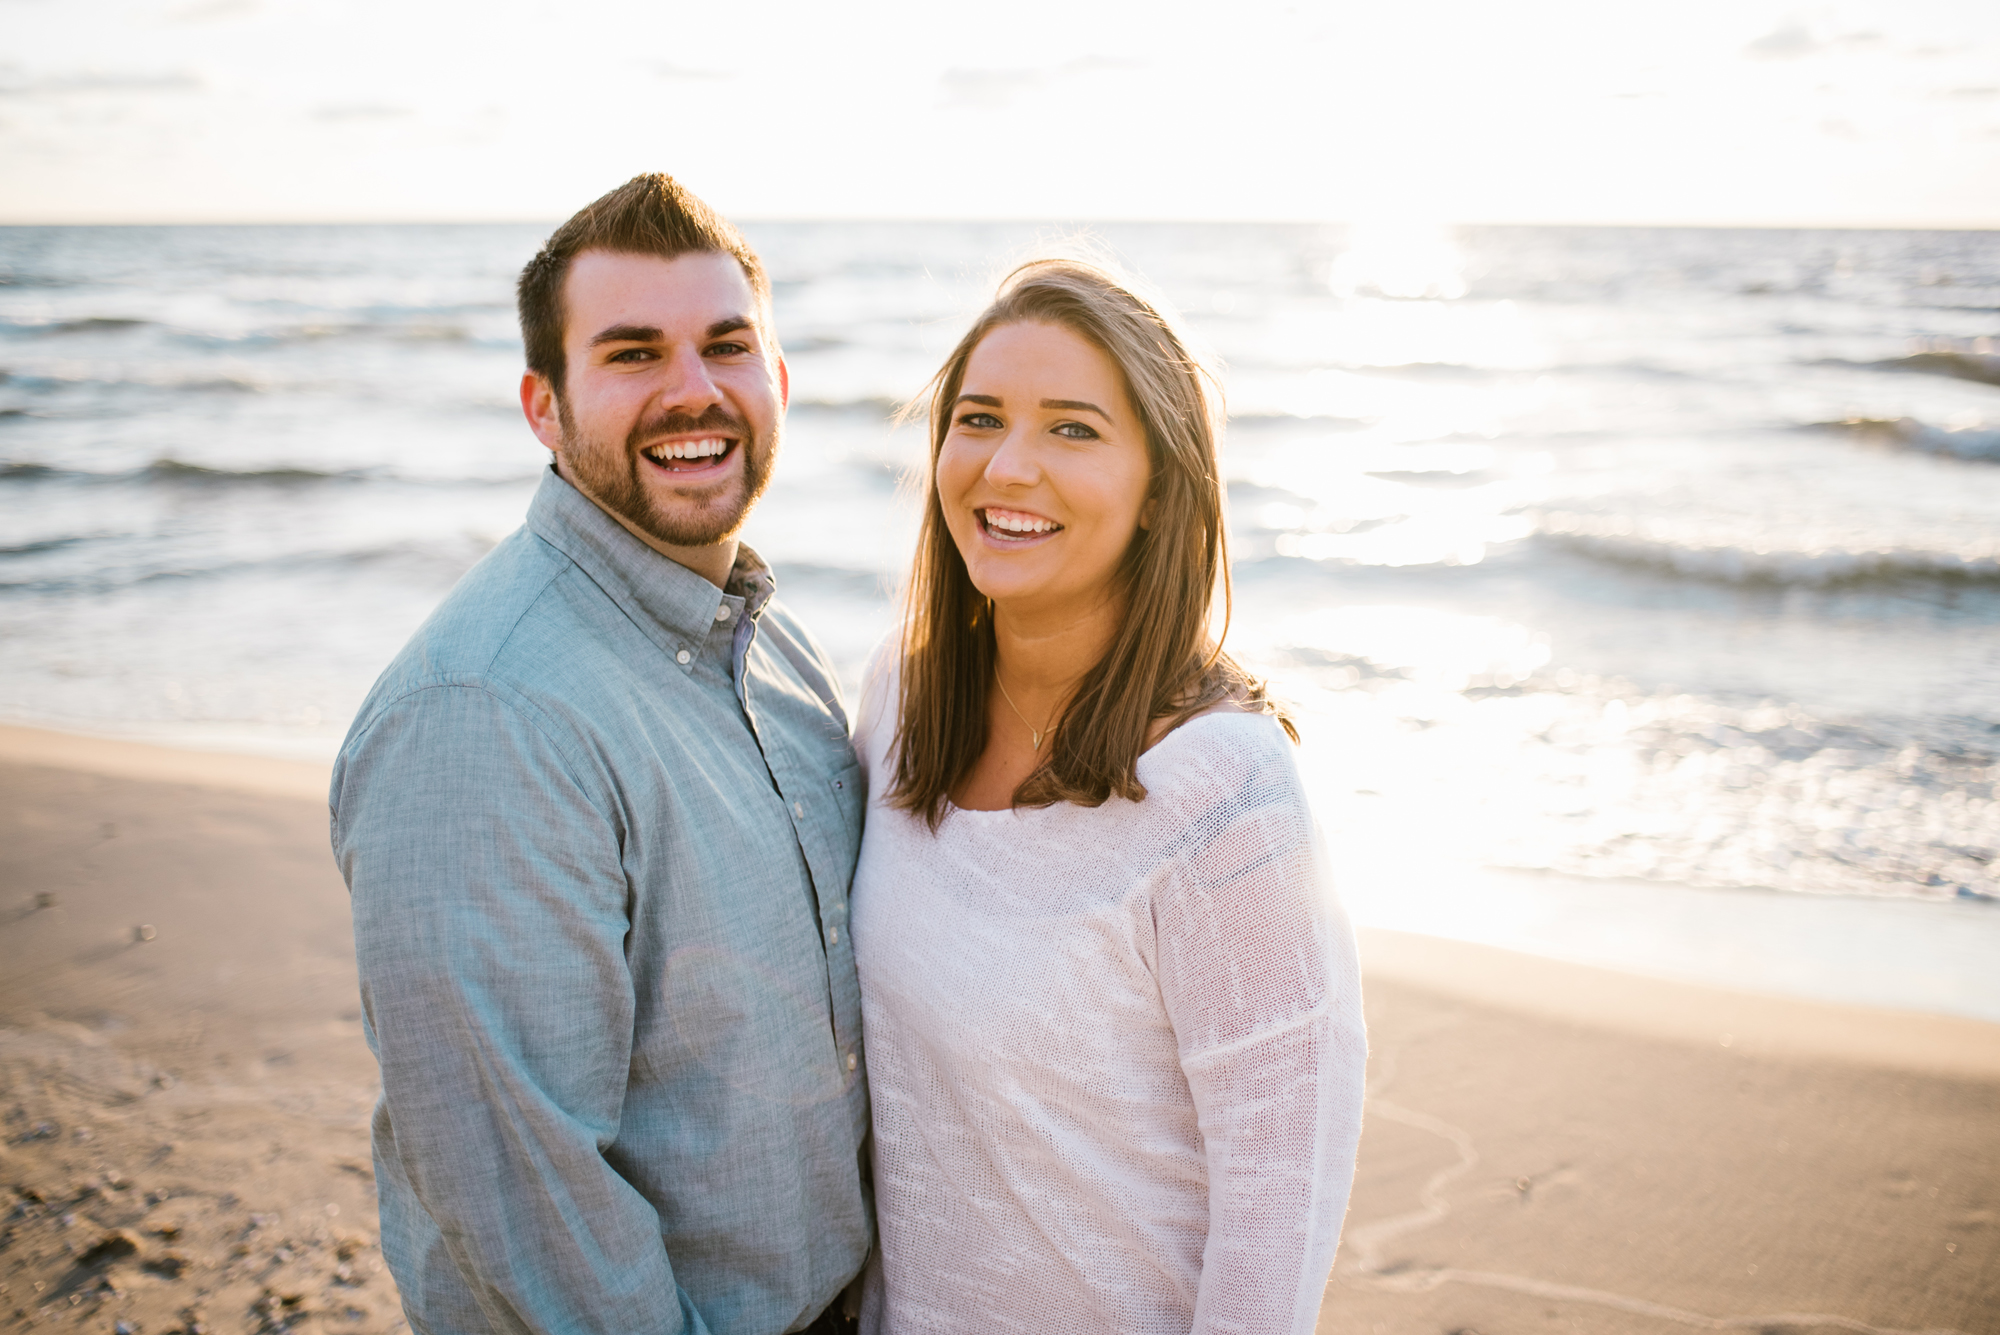 grand-haven-michigan-engagement-photographer-sydney-marie (81).jpg